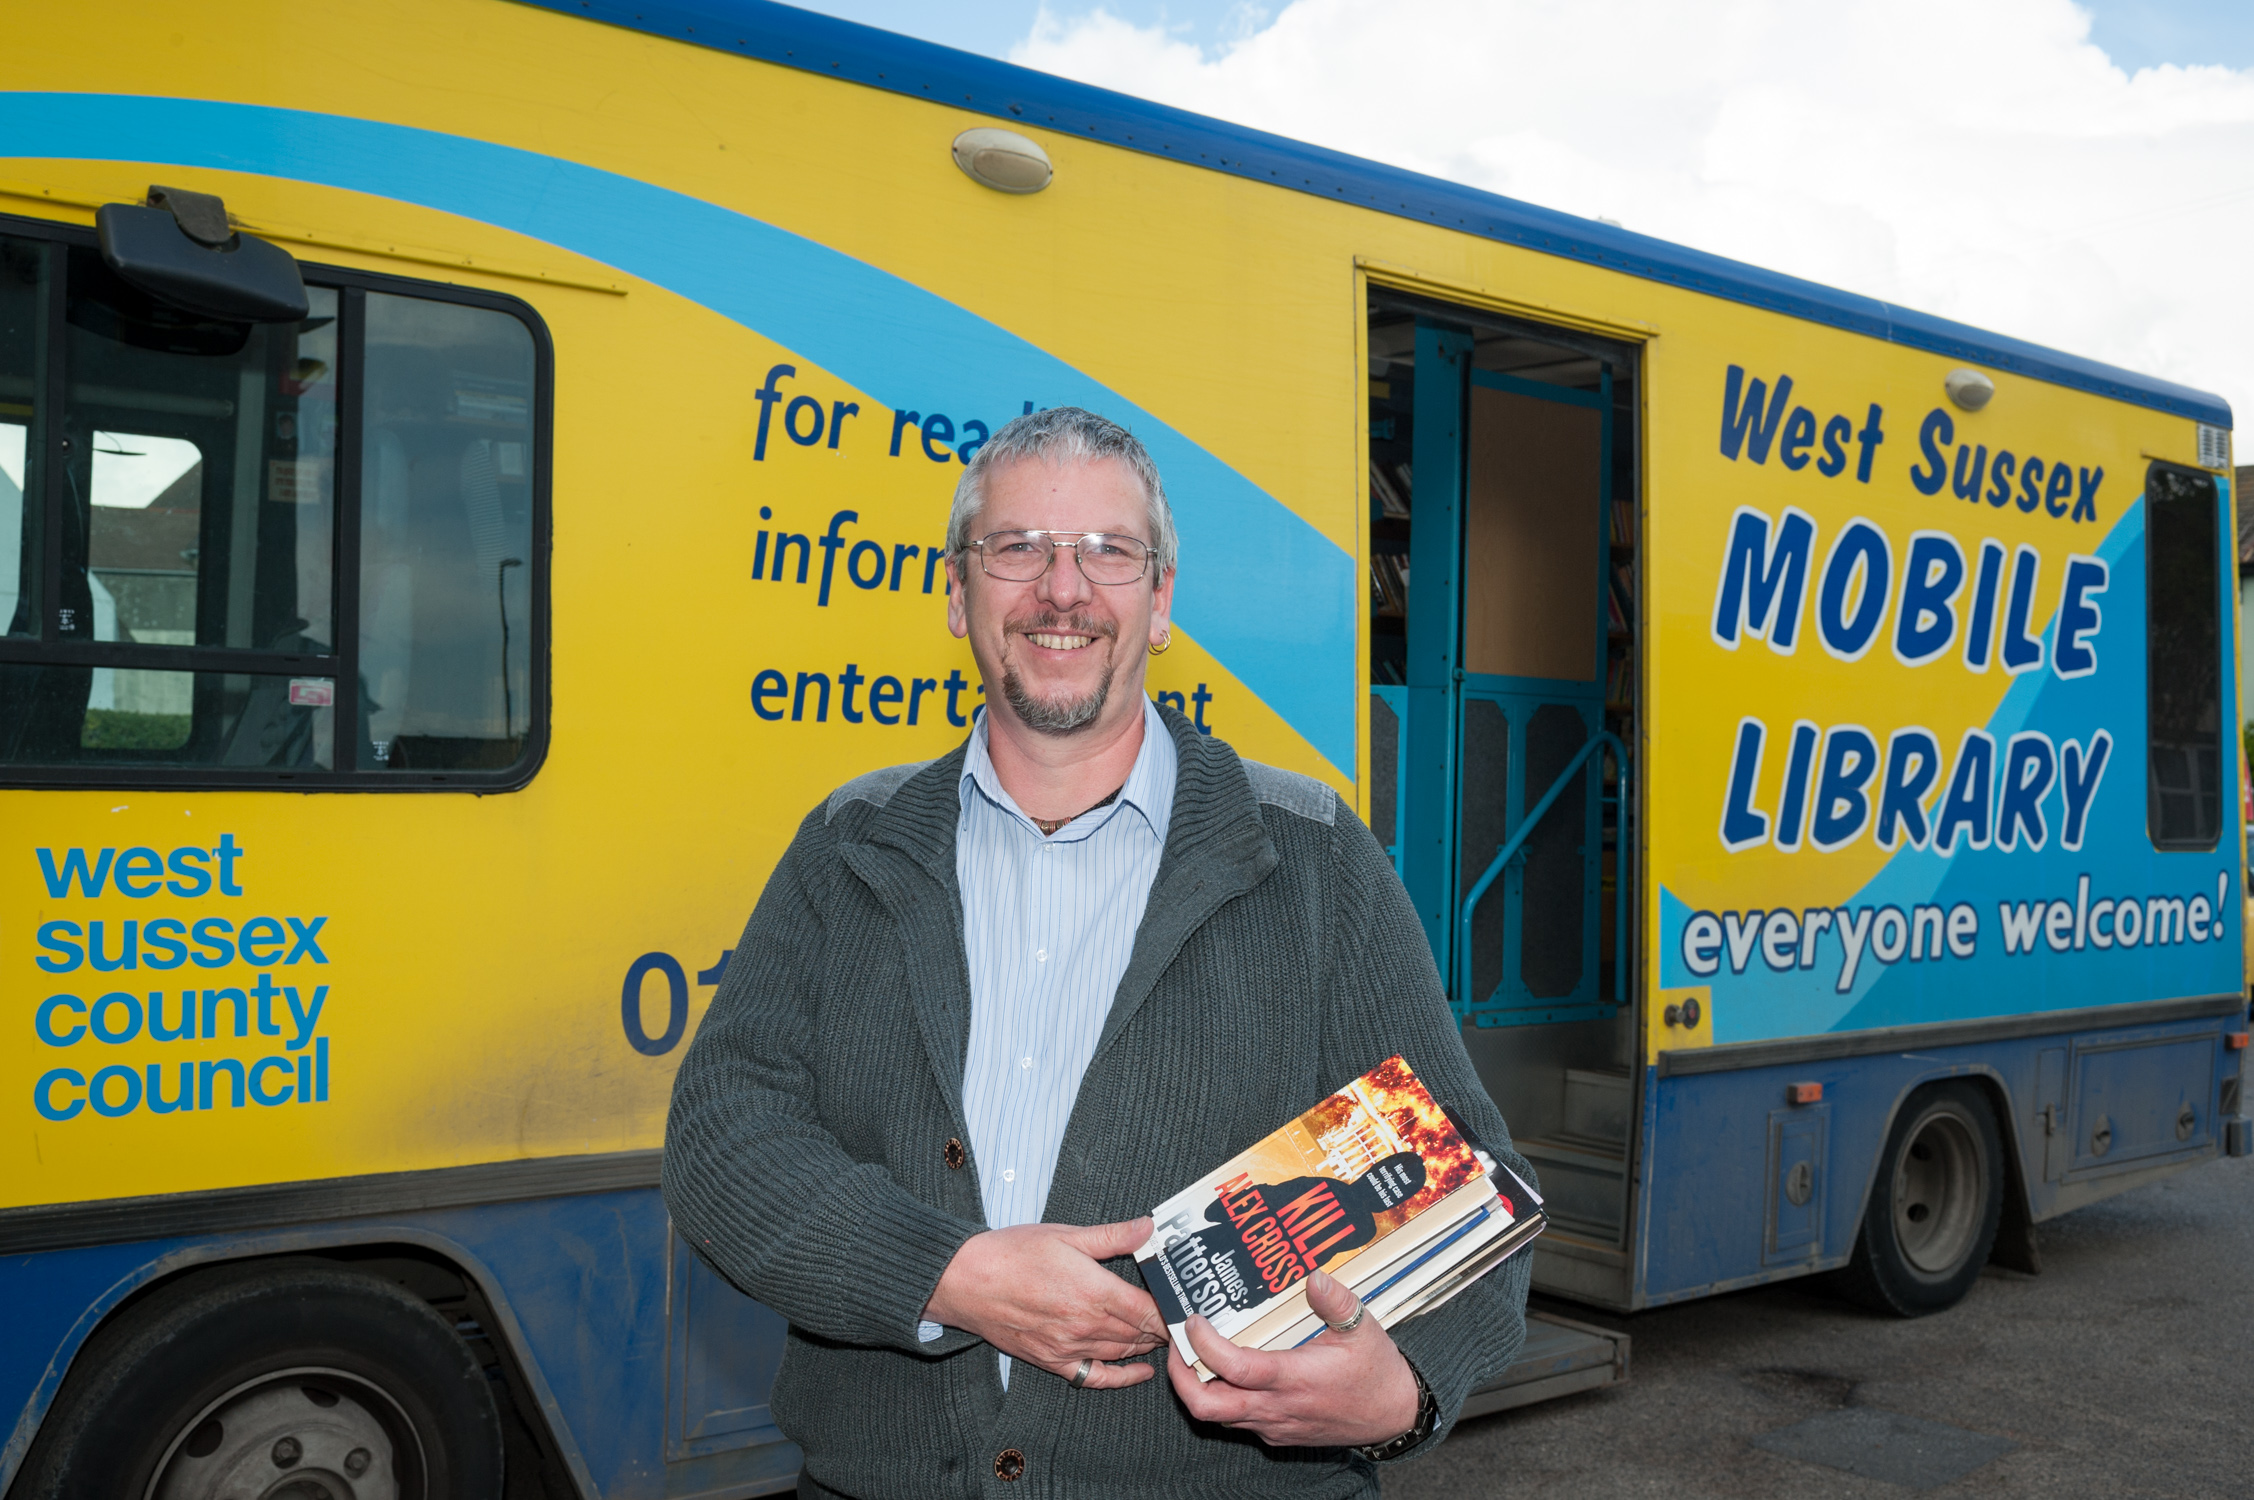 West Sussex Mobile Library